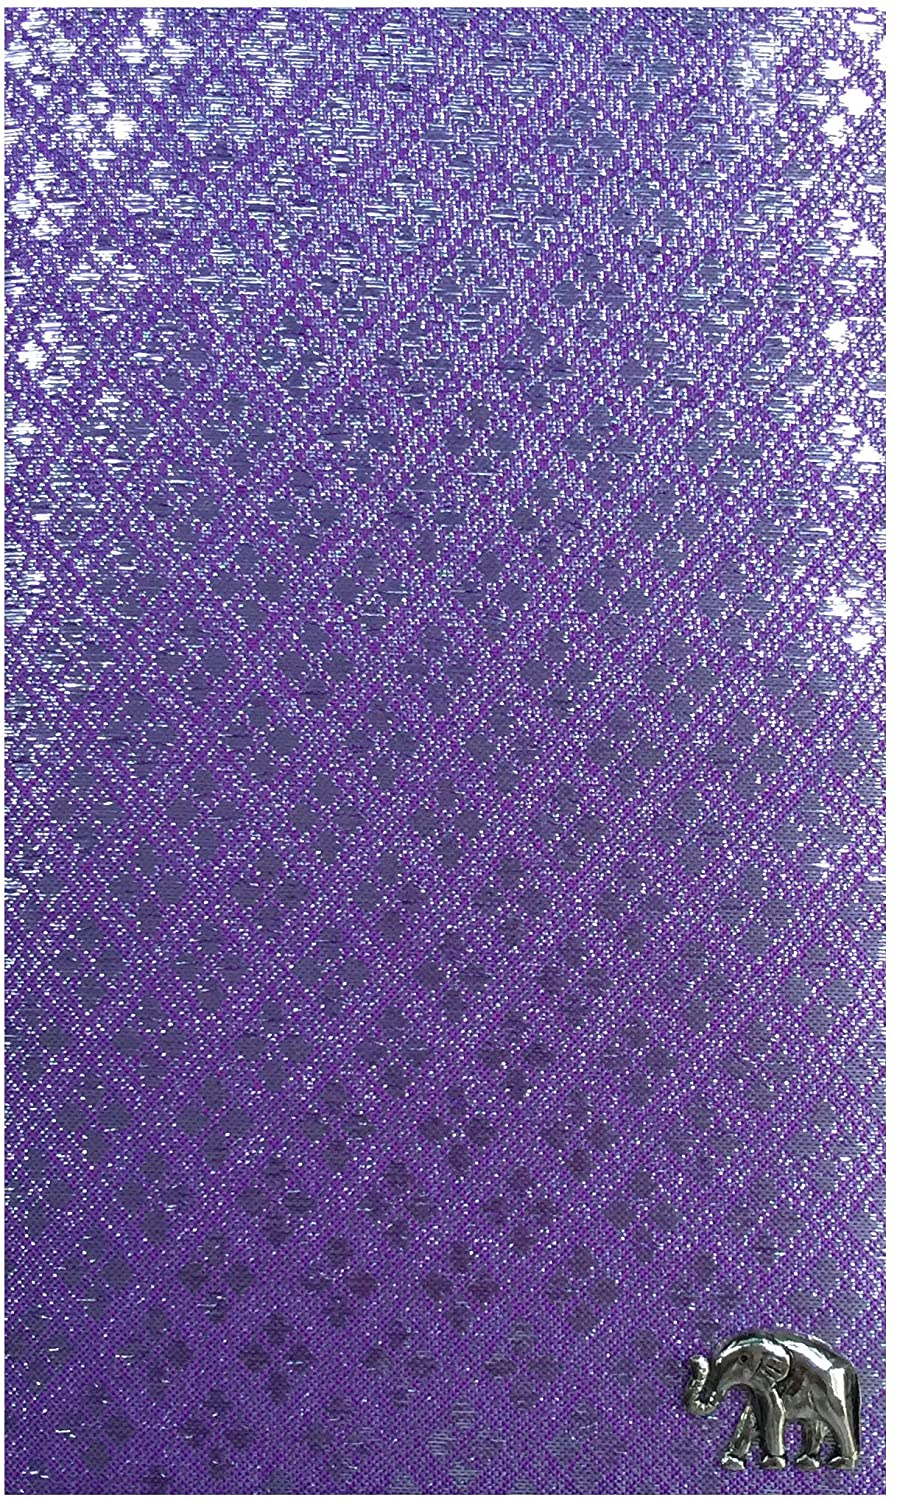 Office Product Light Purple Fabric Guest Check Presenter, Check Book Holder for Restaurant, Checkbook Cover, Waitstaff Organizer, Server Book for Waiters with Money Pocket (With Plastic Cover)